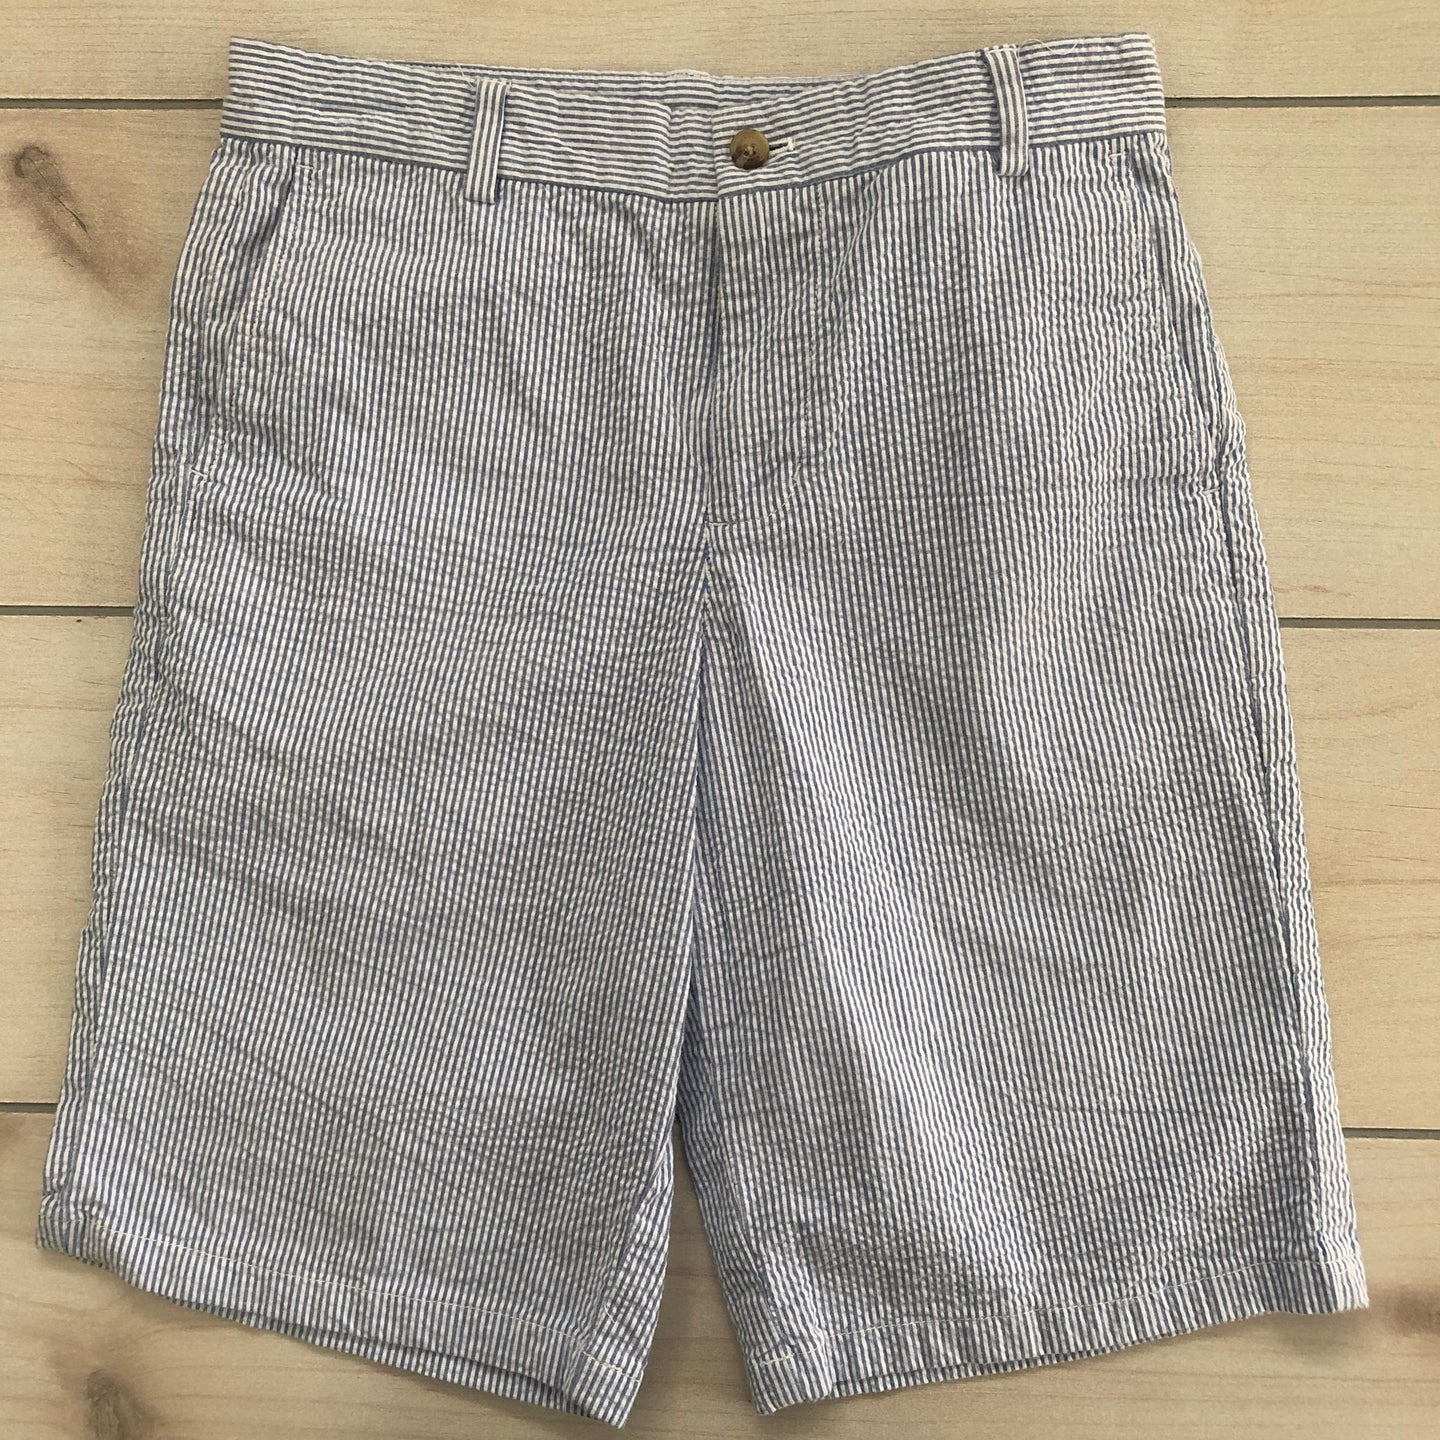 Vineyard Vines Seersucker Shorts Size 16